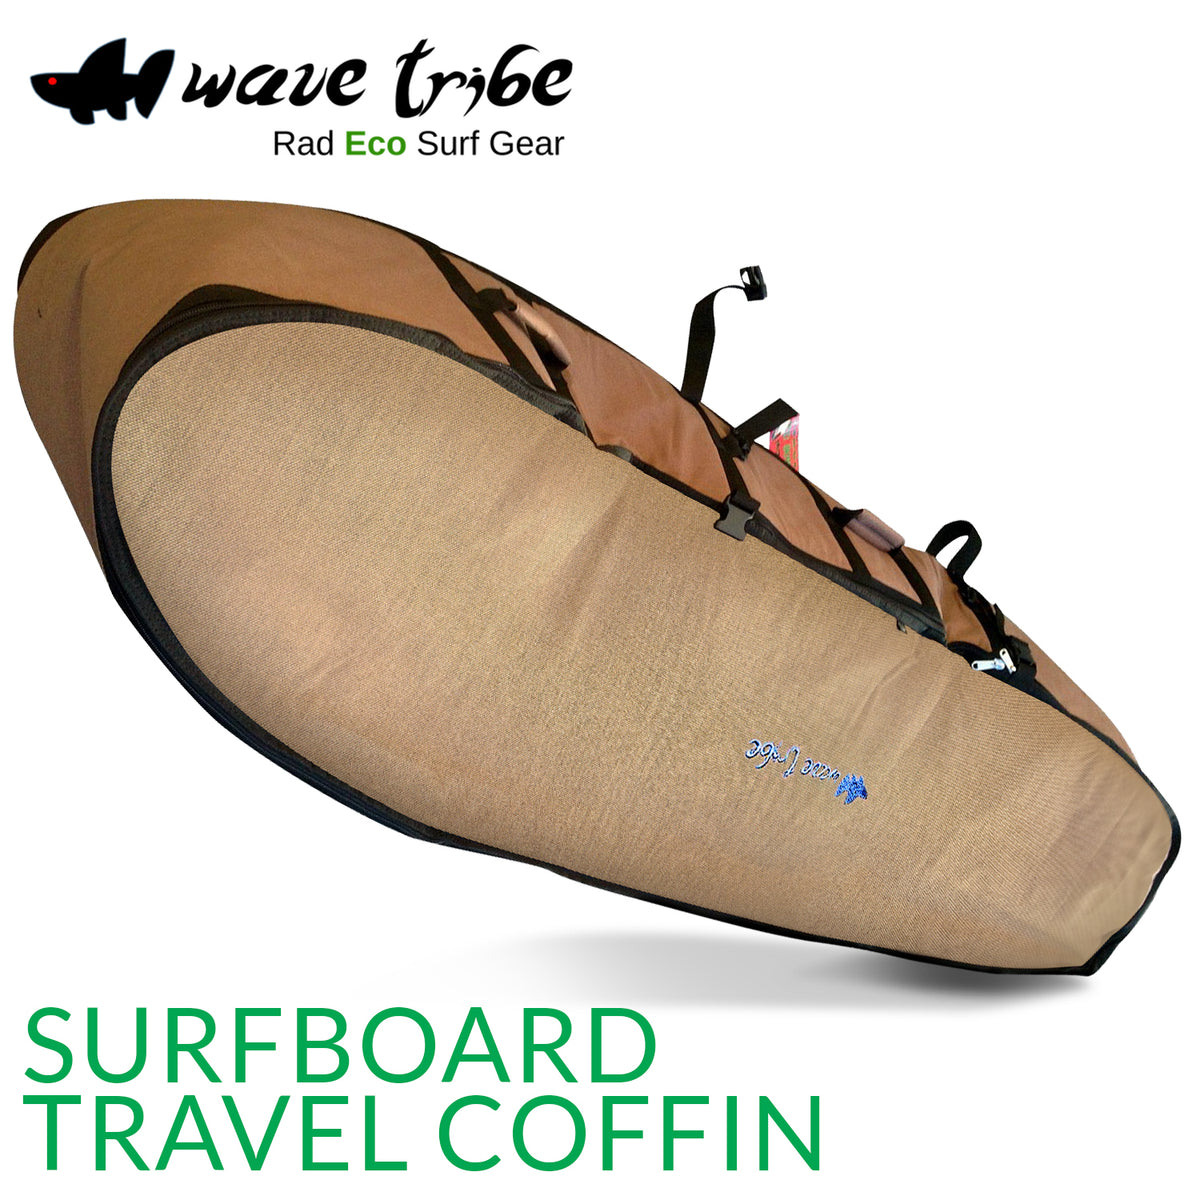 Hemp Travel Coffin 8'6